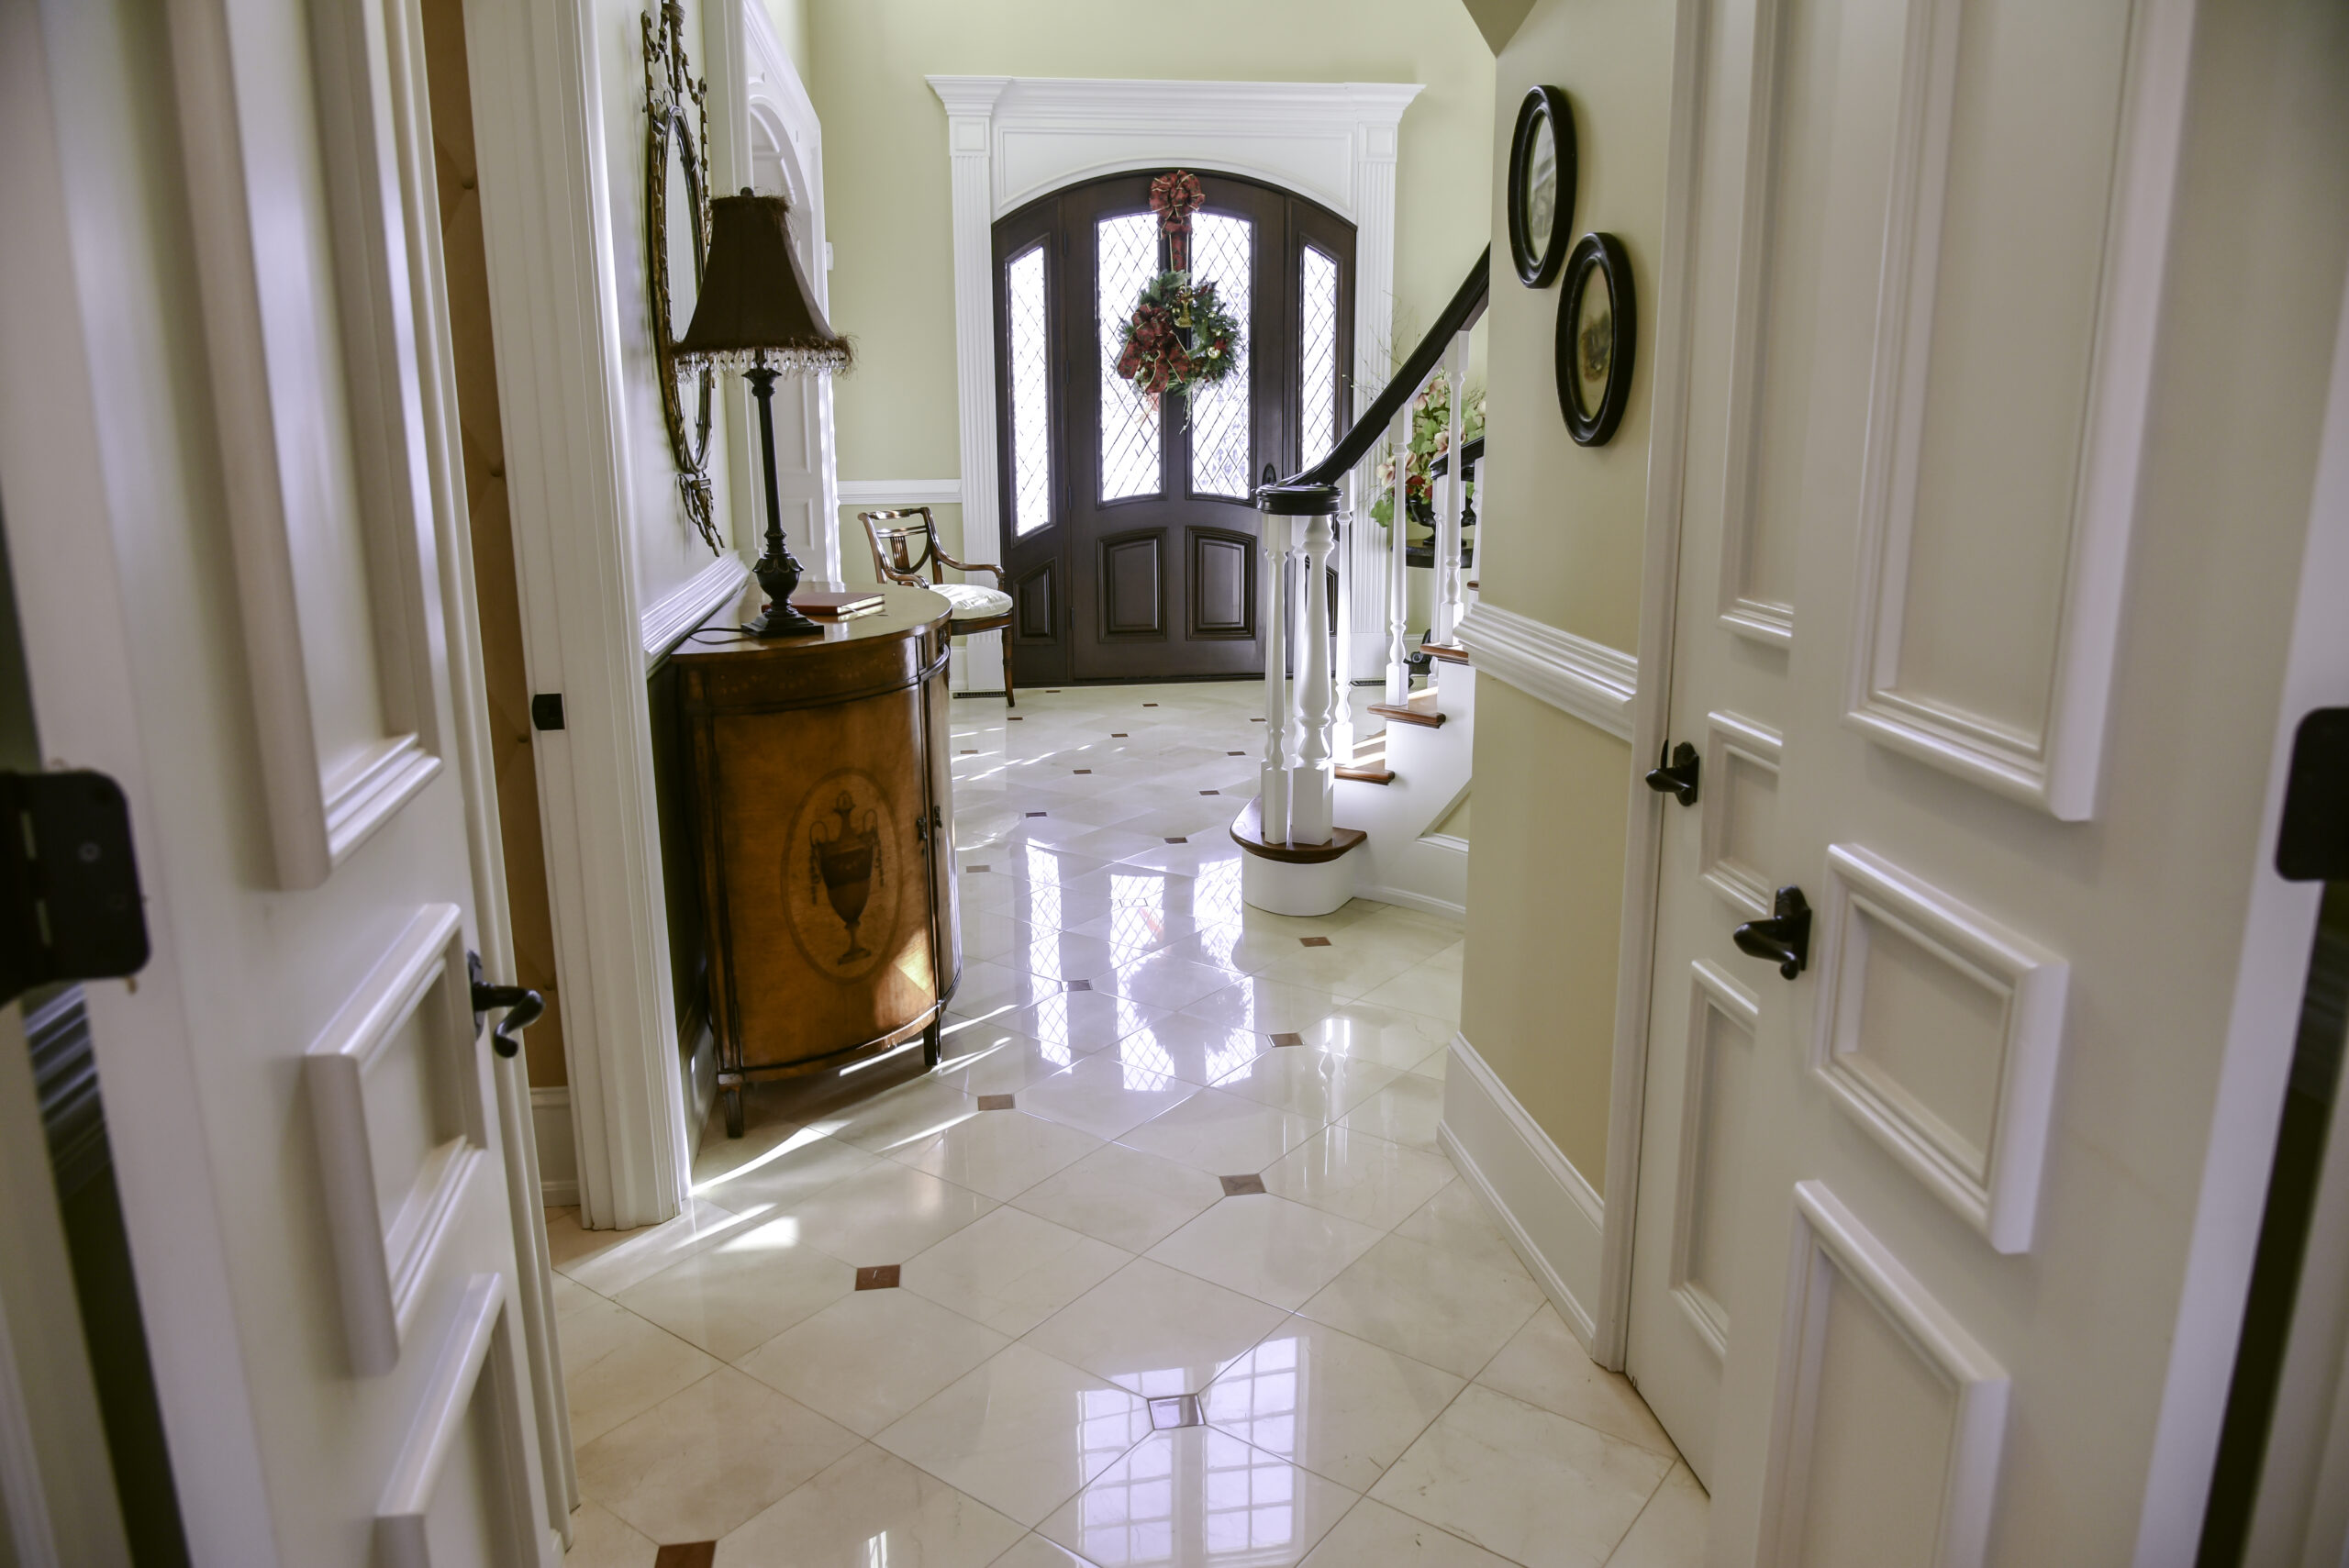 CREMA MARFIL MARBLE RESTORATION, ACHIEVING HIGH GLOSS RESULTS WITH ONLY MECHANICAL DIAMOND POLISHING